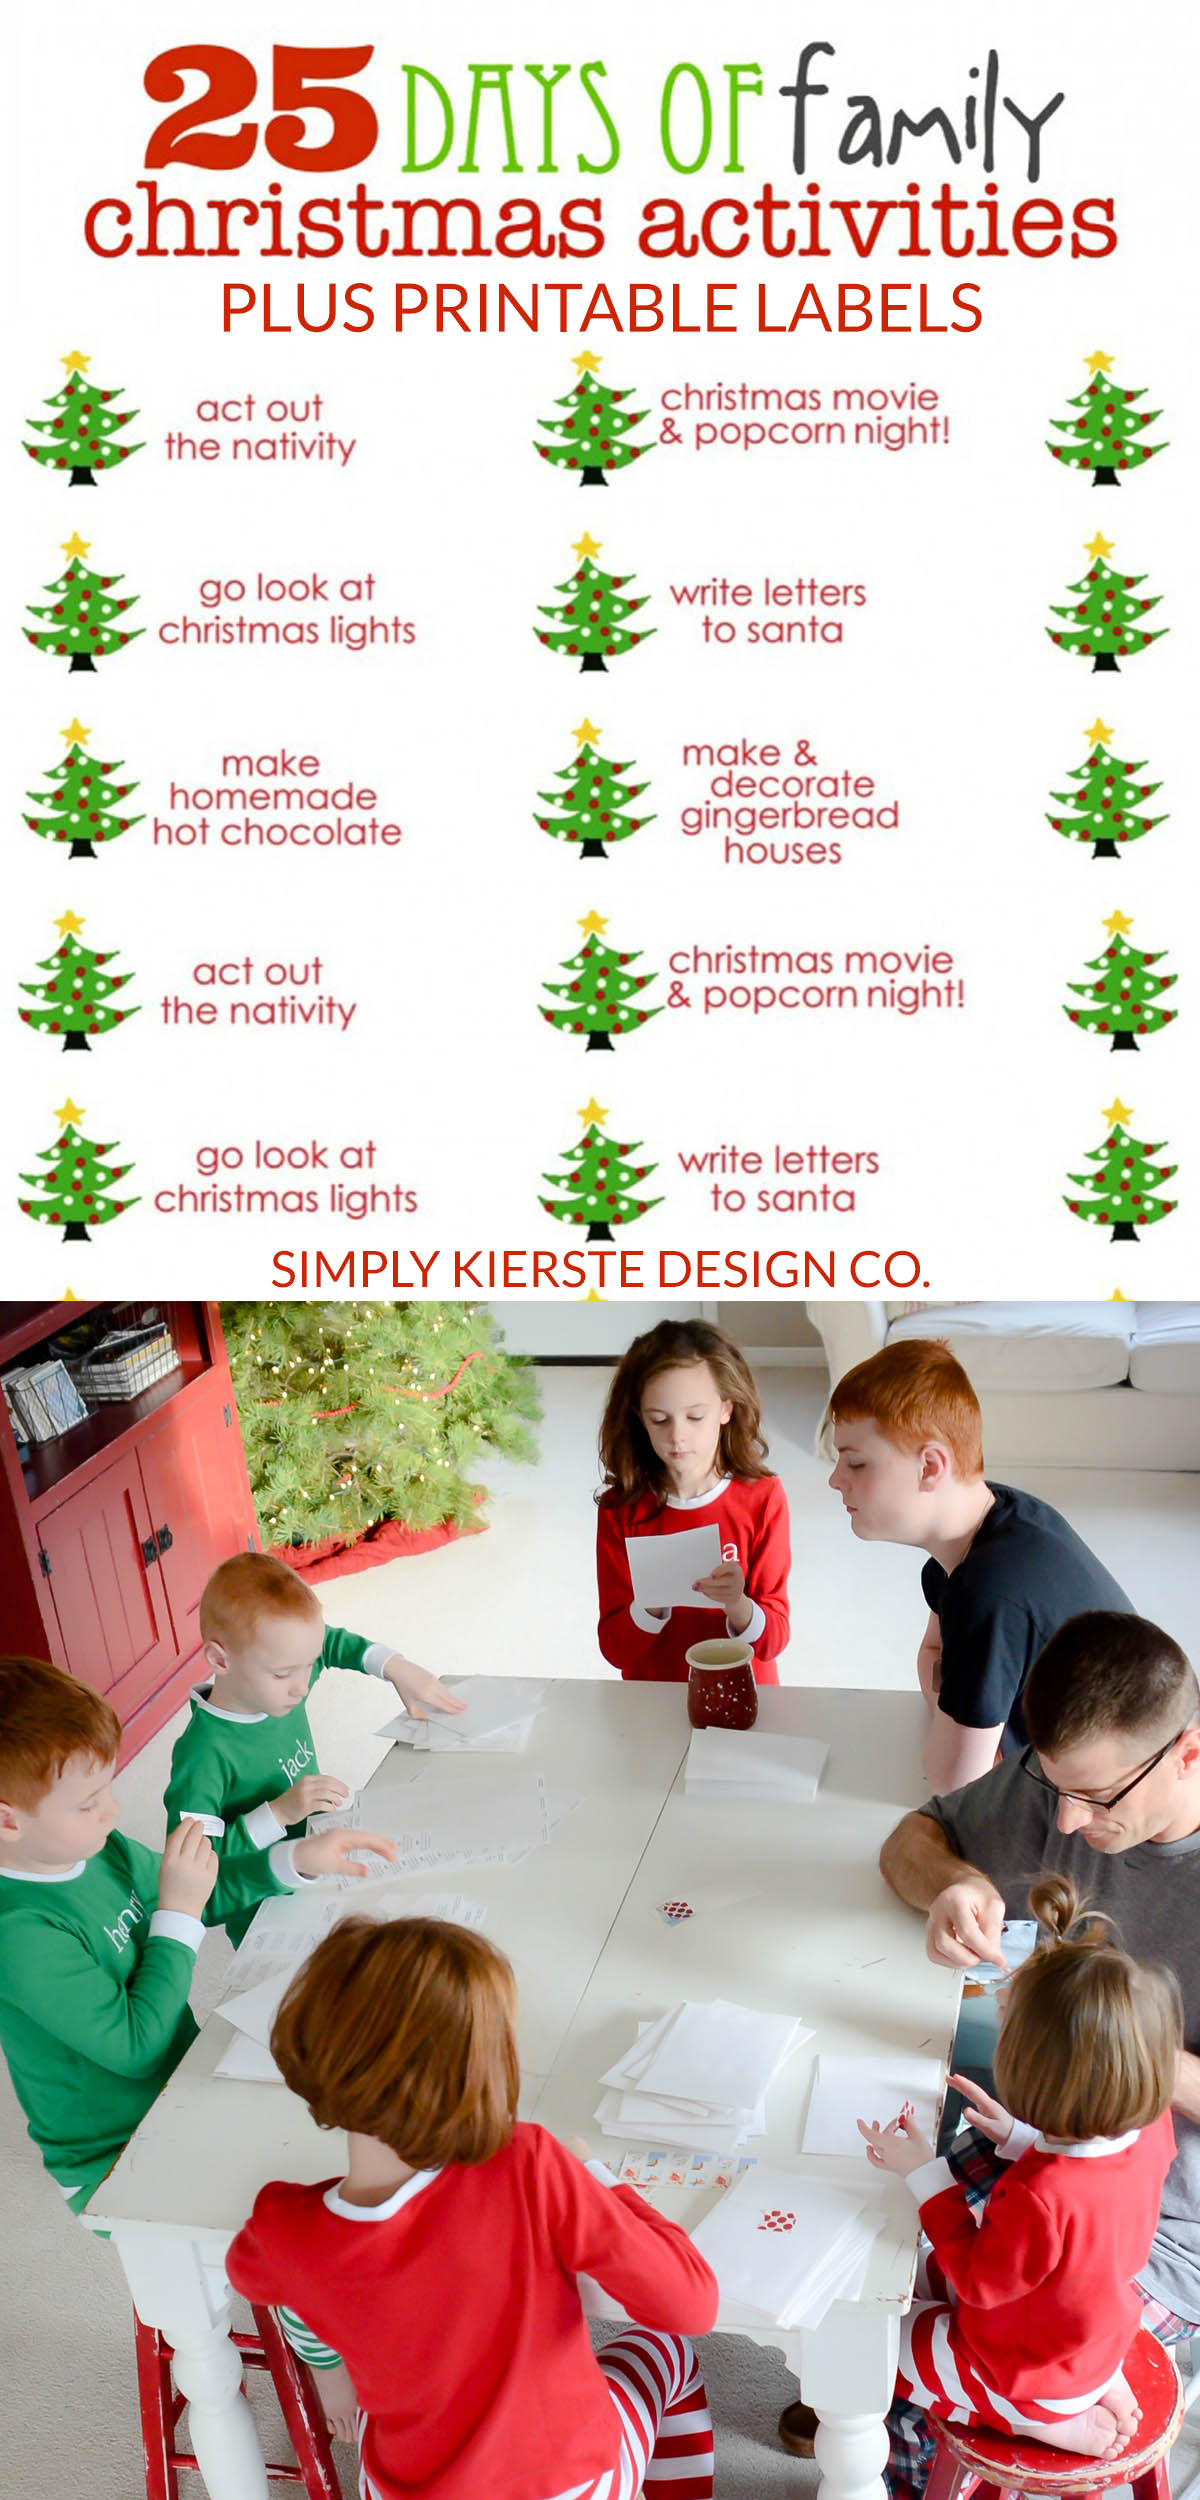 25 days of family christmas activities free printable labels simplykierstecom christmastraditionsforfamiilies - Christmas Eve Activities